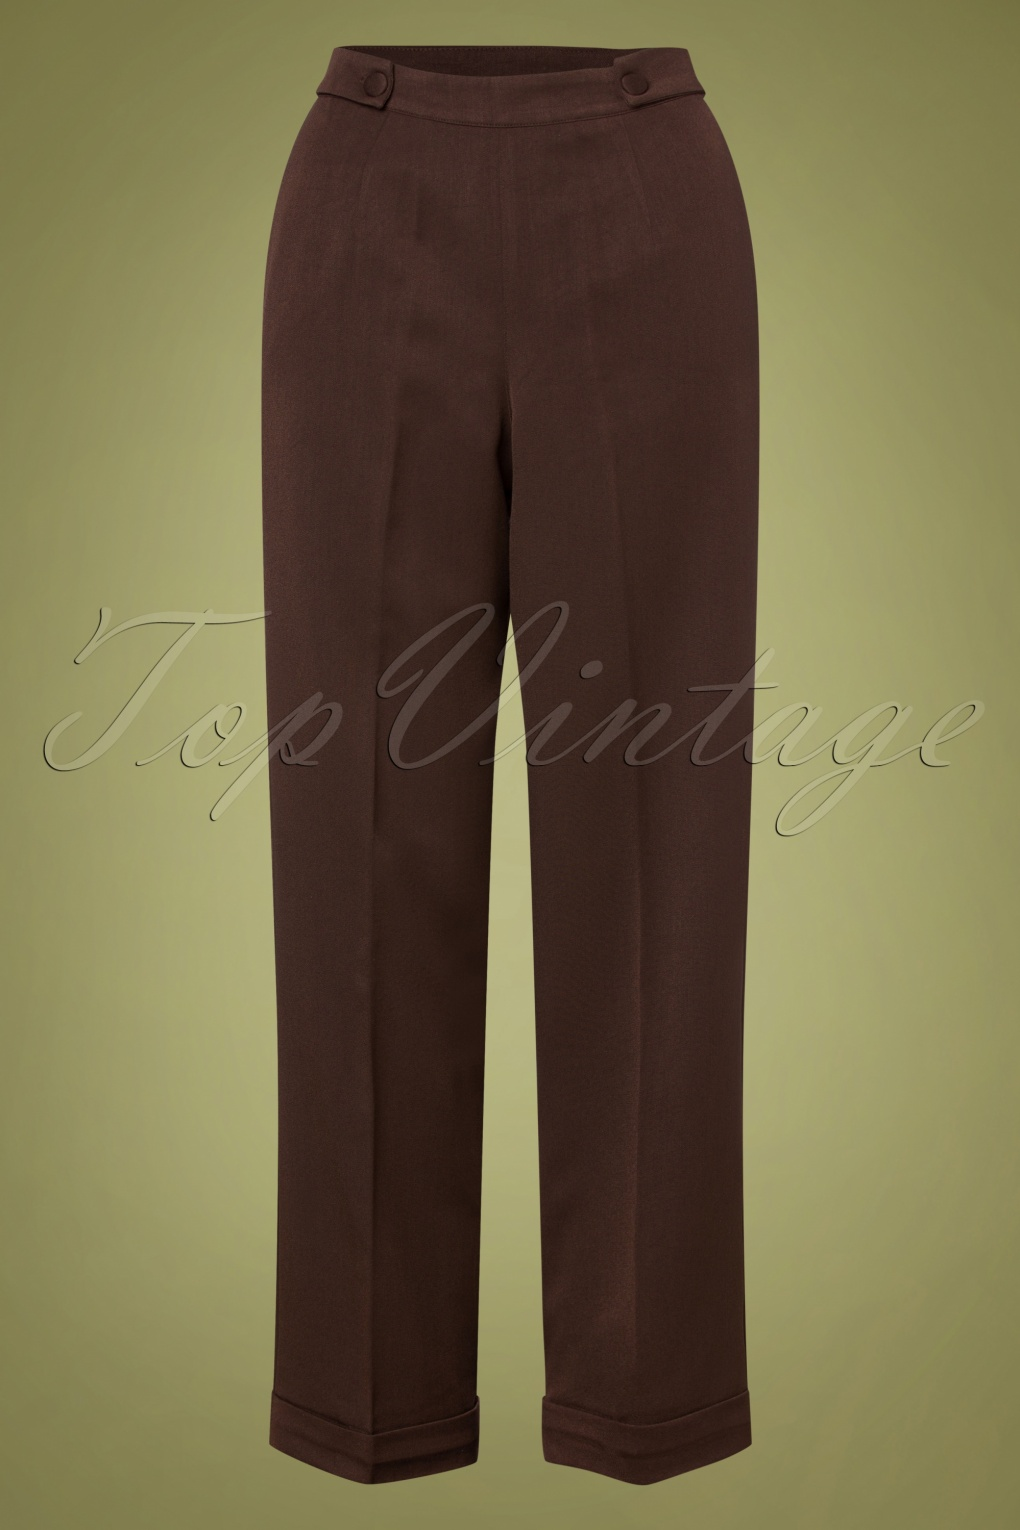 Vintage Wide Leg Pants & Beach Pajamas History 40s Party On Classy Trousers in Brown £36.39 AT vintagedancer.com